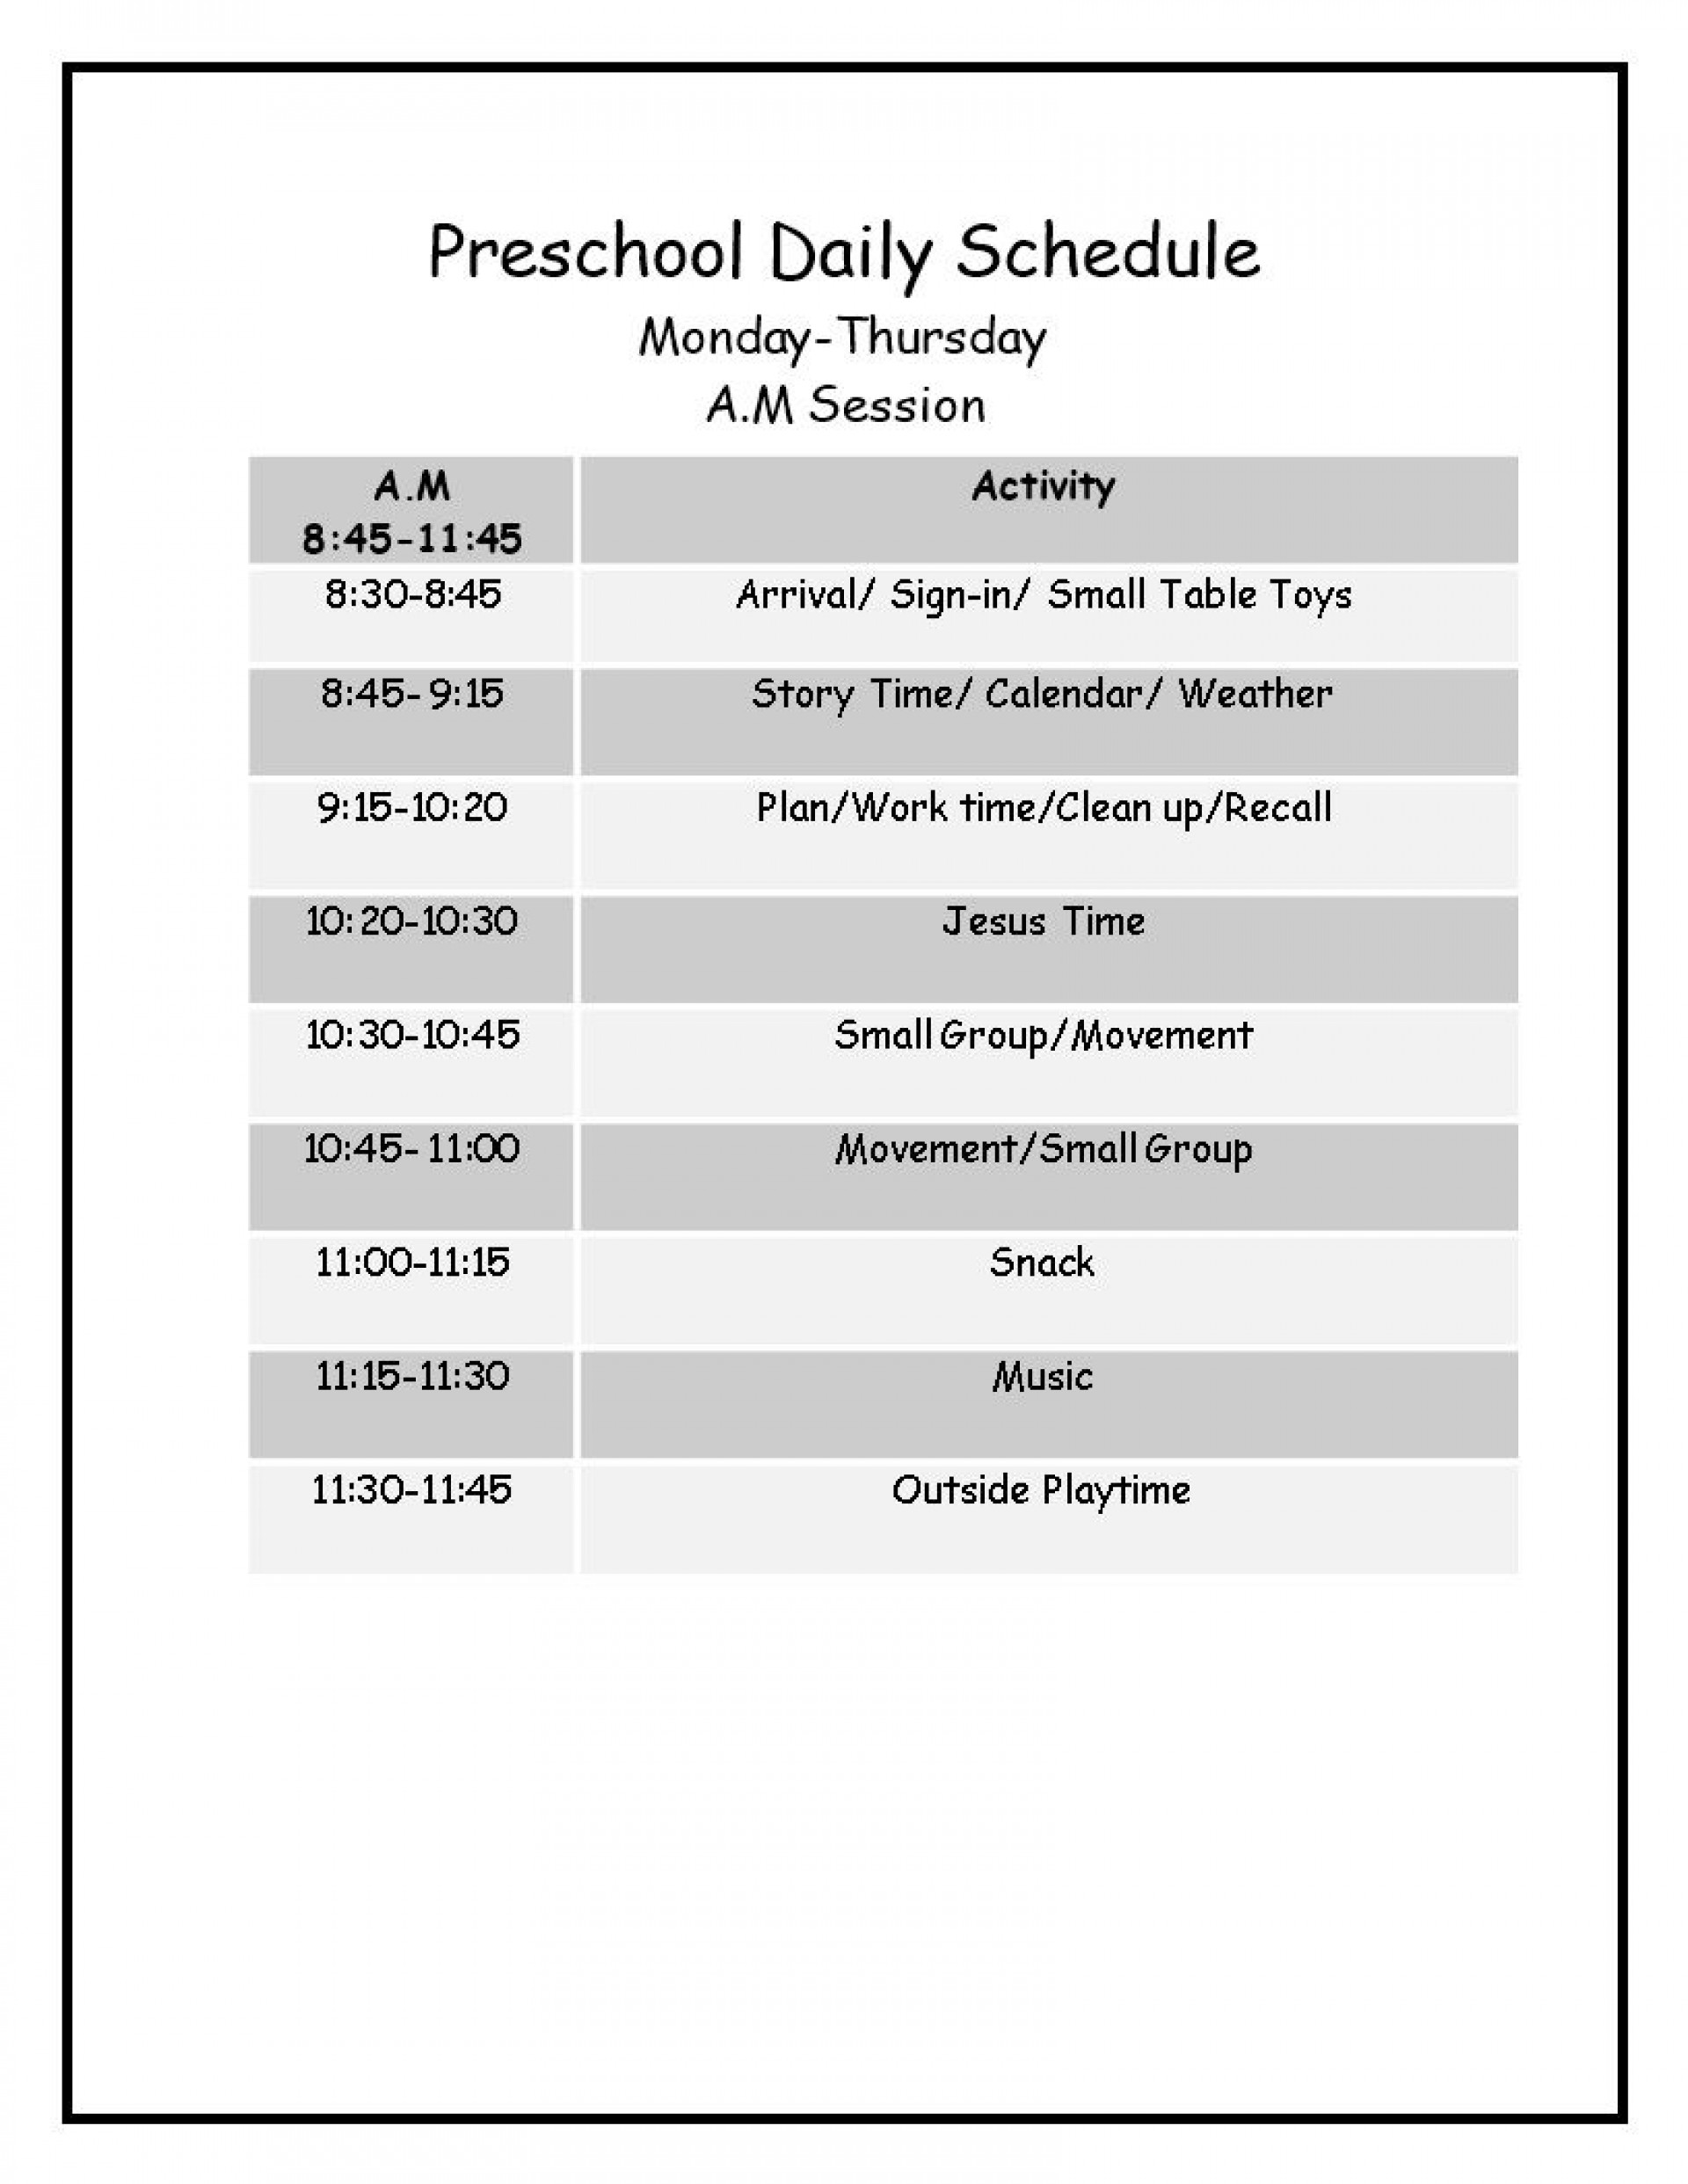 007 Incredible Preschool Daily Schedule Template Highest Clarity  Planner Routine Plan1920